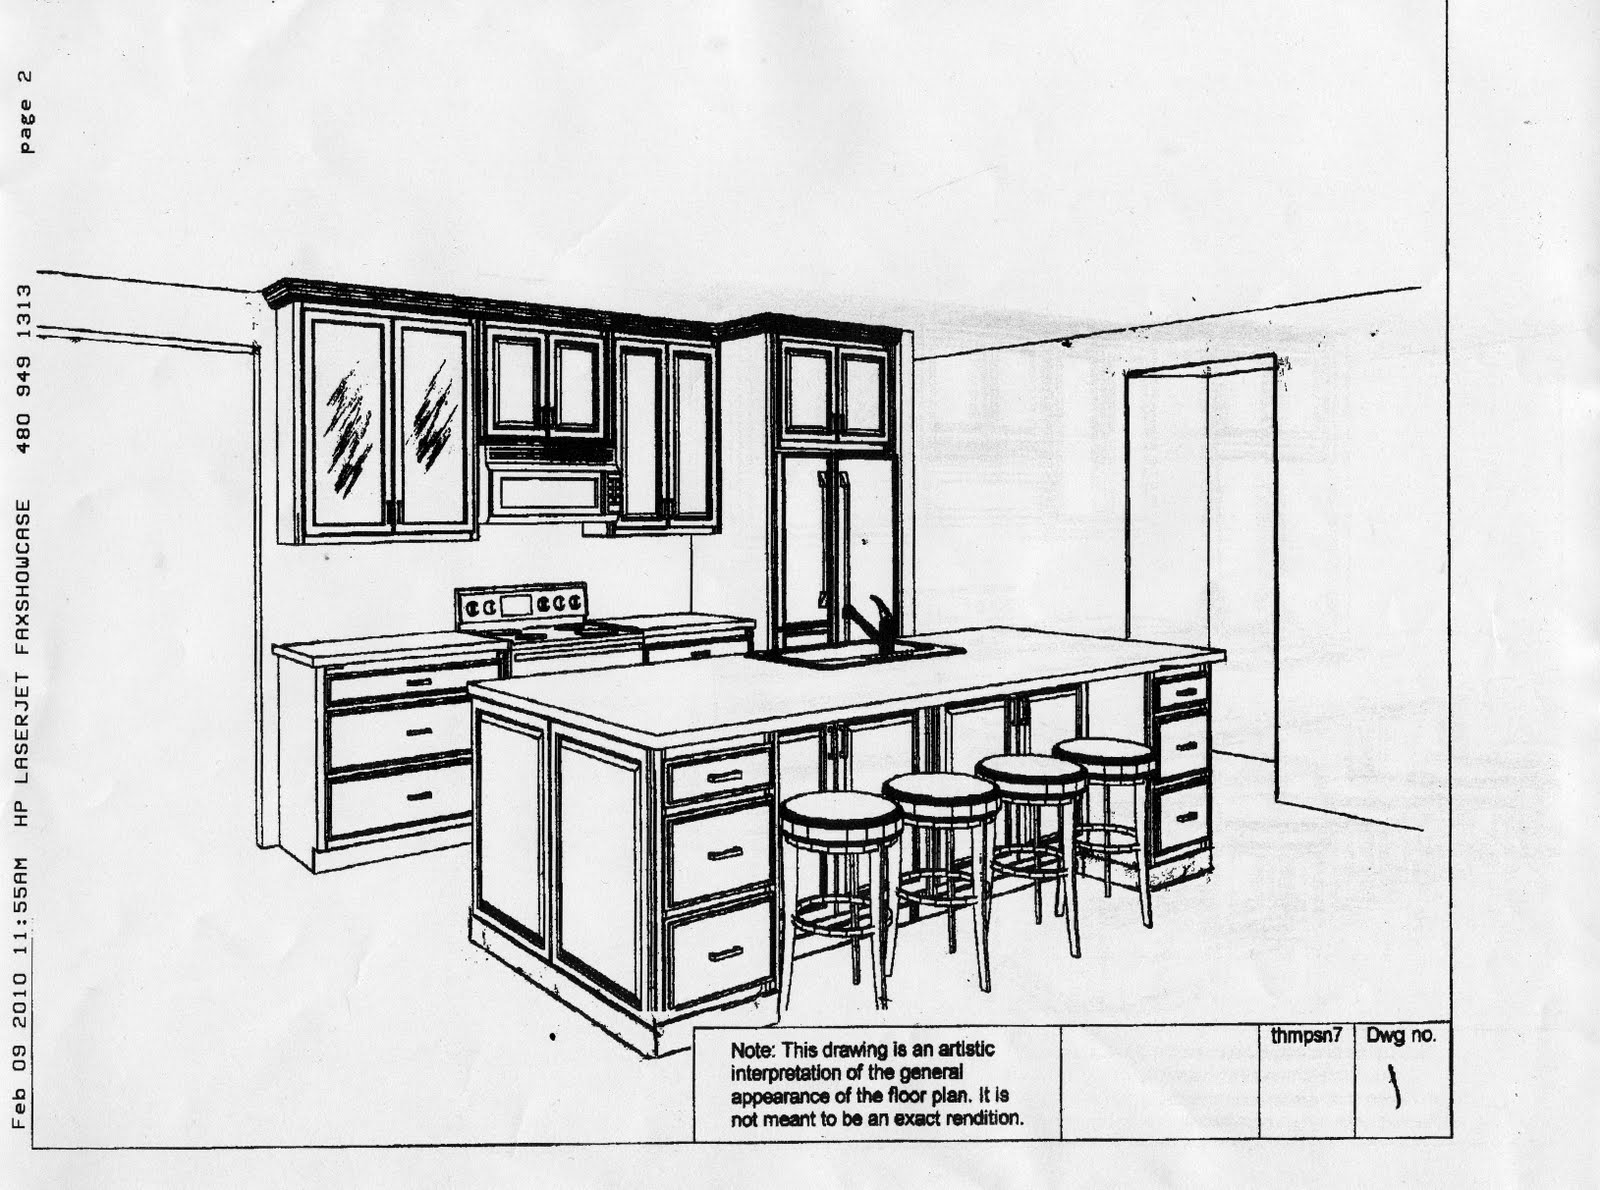 Images of 12 X 9 Kitchen Design Plans